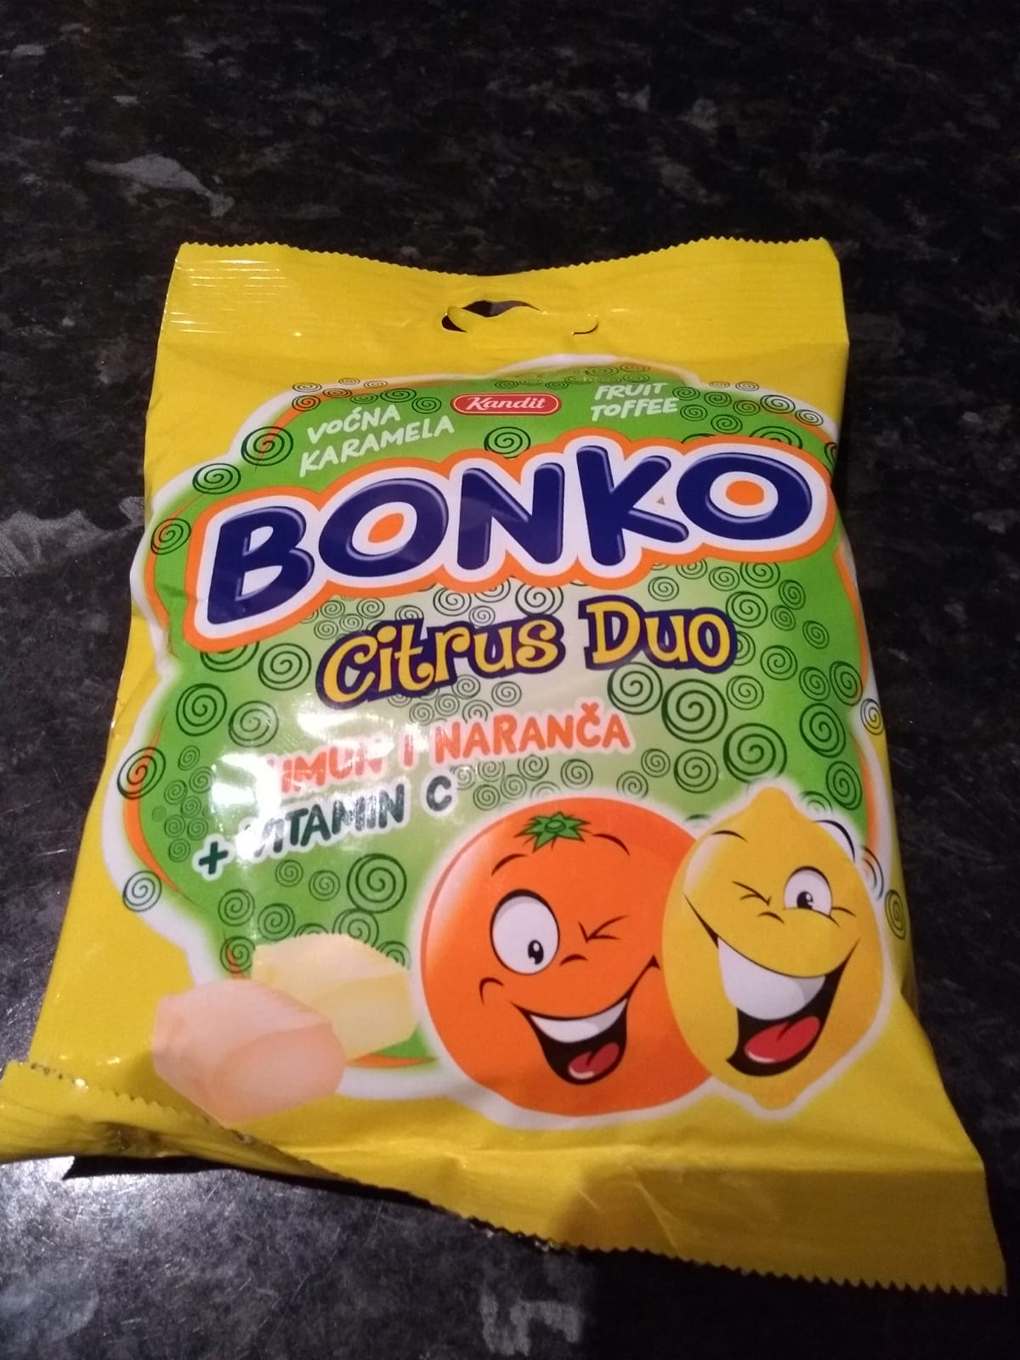 packet of sweets with cartoon lemon and orange on front